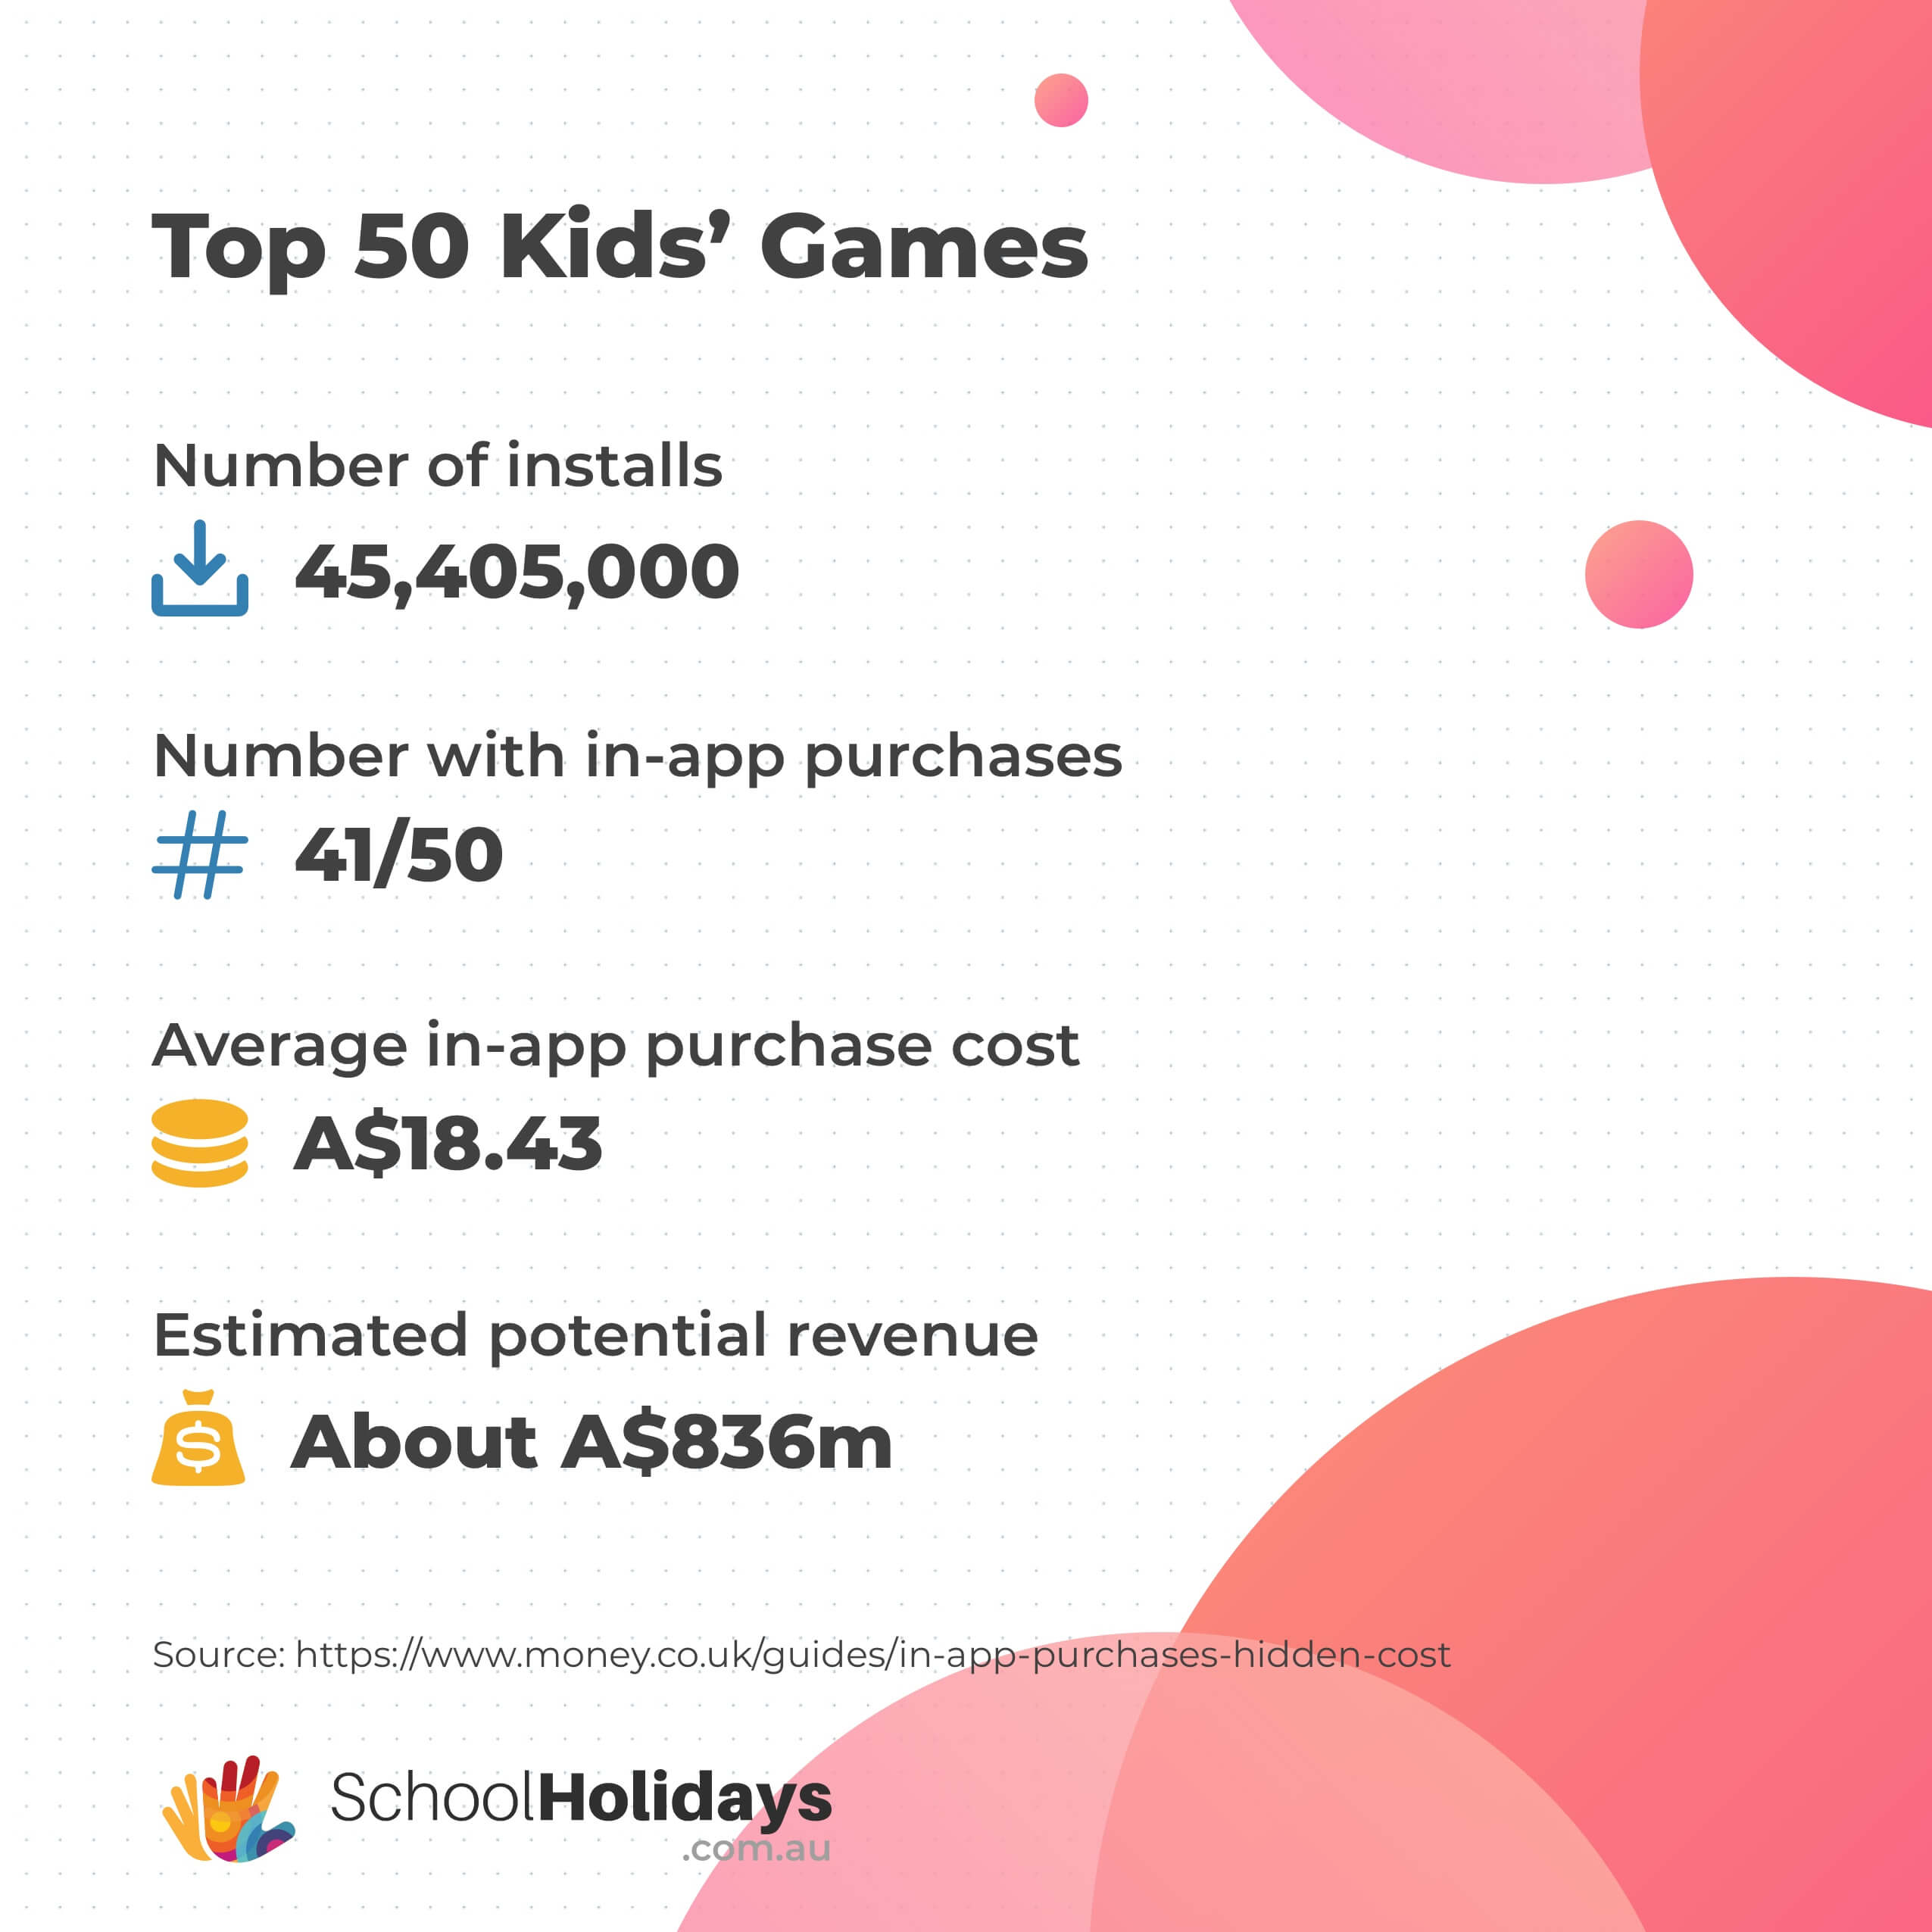 Google Play store's Top Free Kids' Games stats by Money.co.uk converted into Australian Dollars as of 21 May 2020